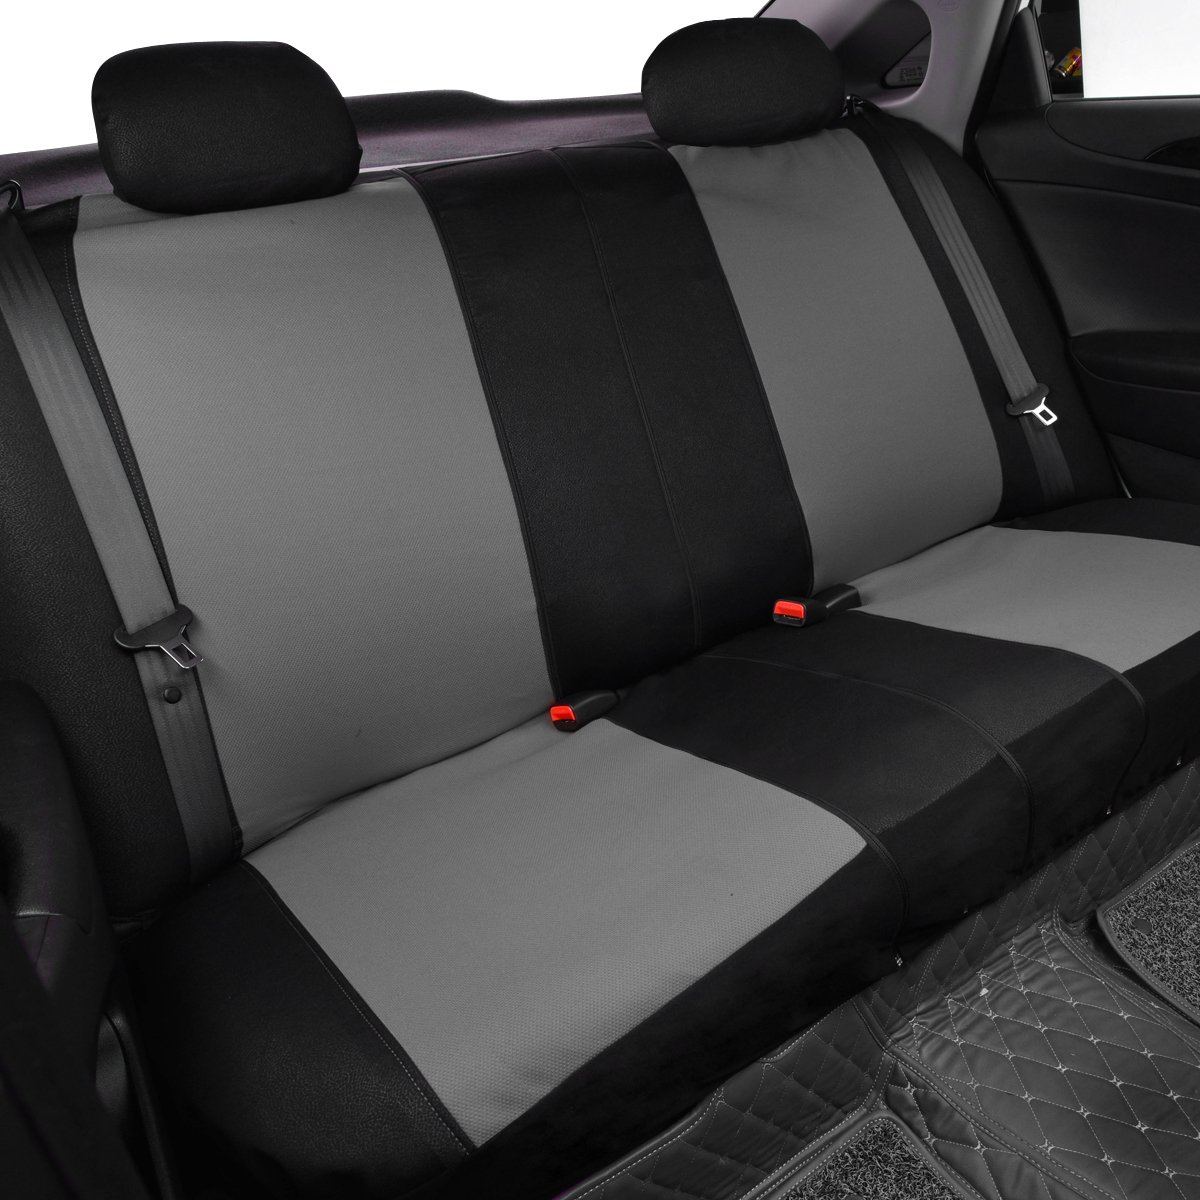 Black Car Pass Montclair Universal Fit Car Seat Covers with Opening Holes for Headrest and Seat Belts